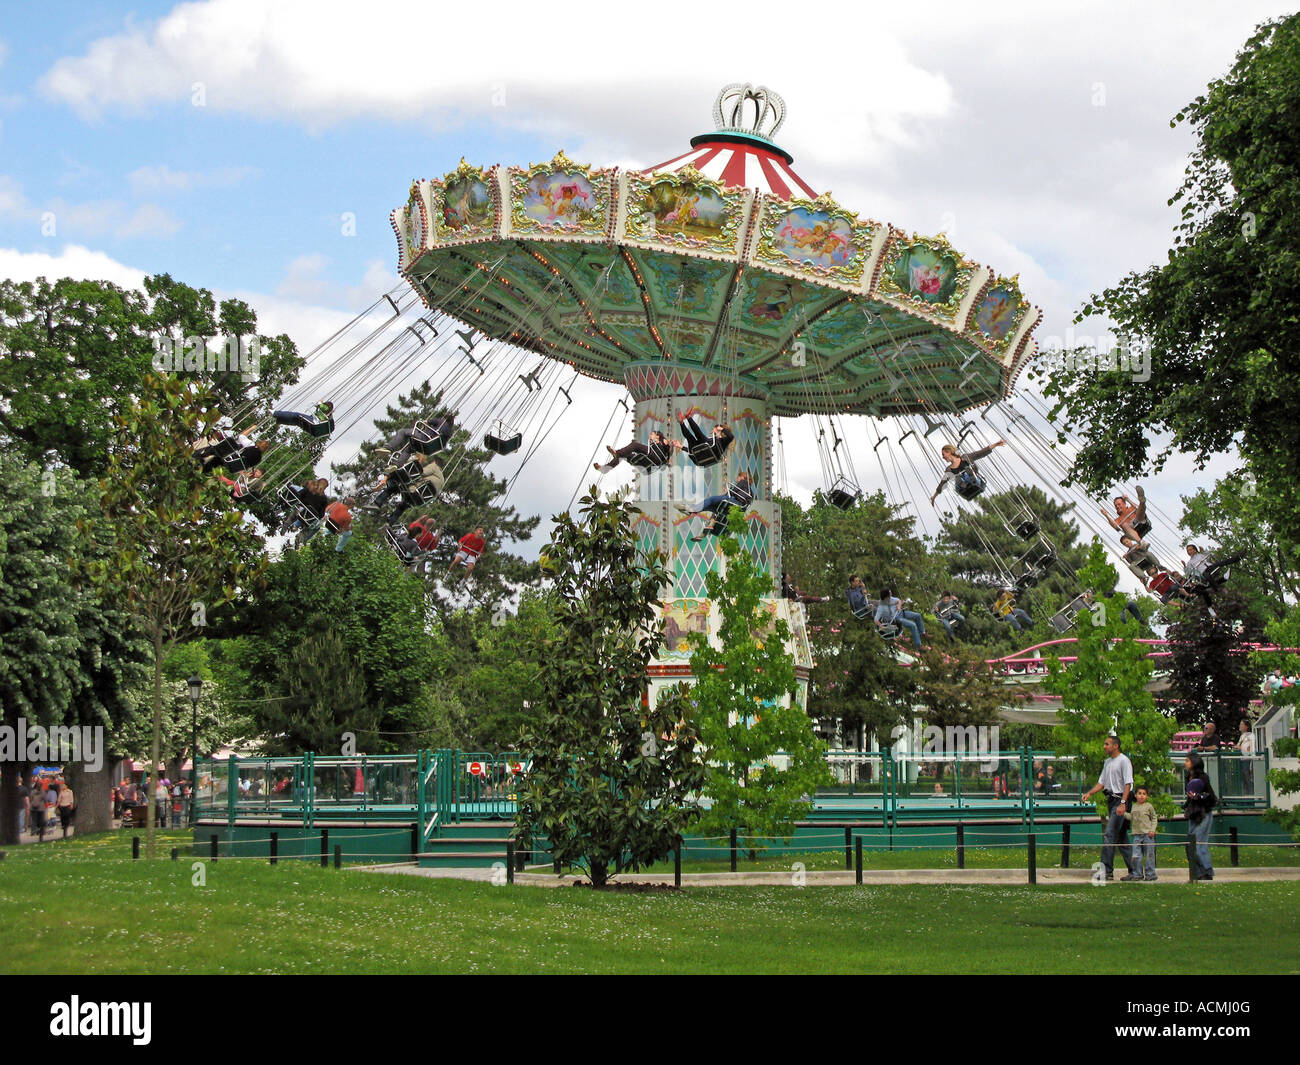 Roundabout in le jardin d acclimatation paris france stock for Jardin france